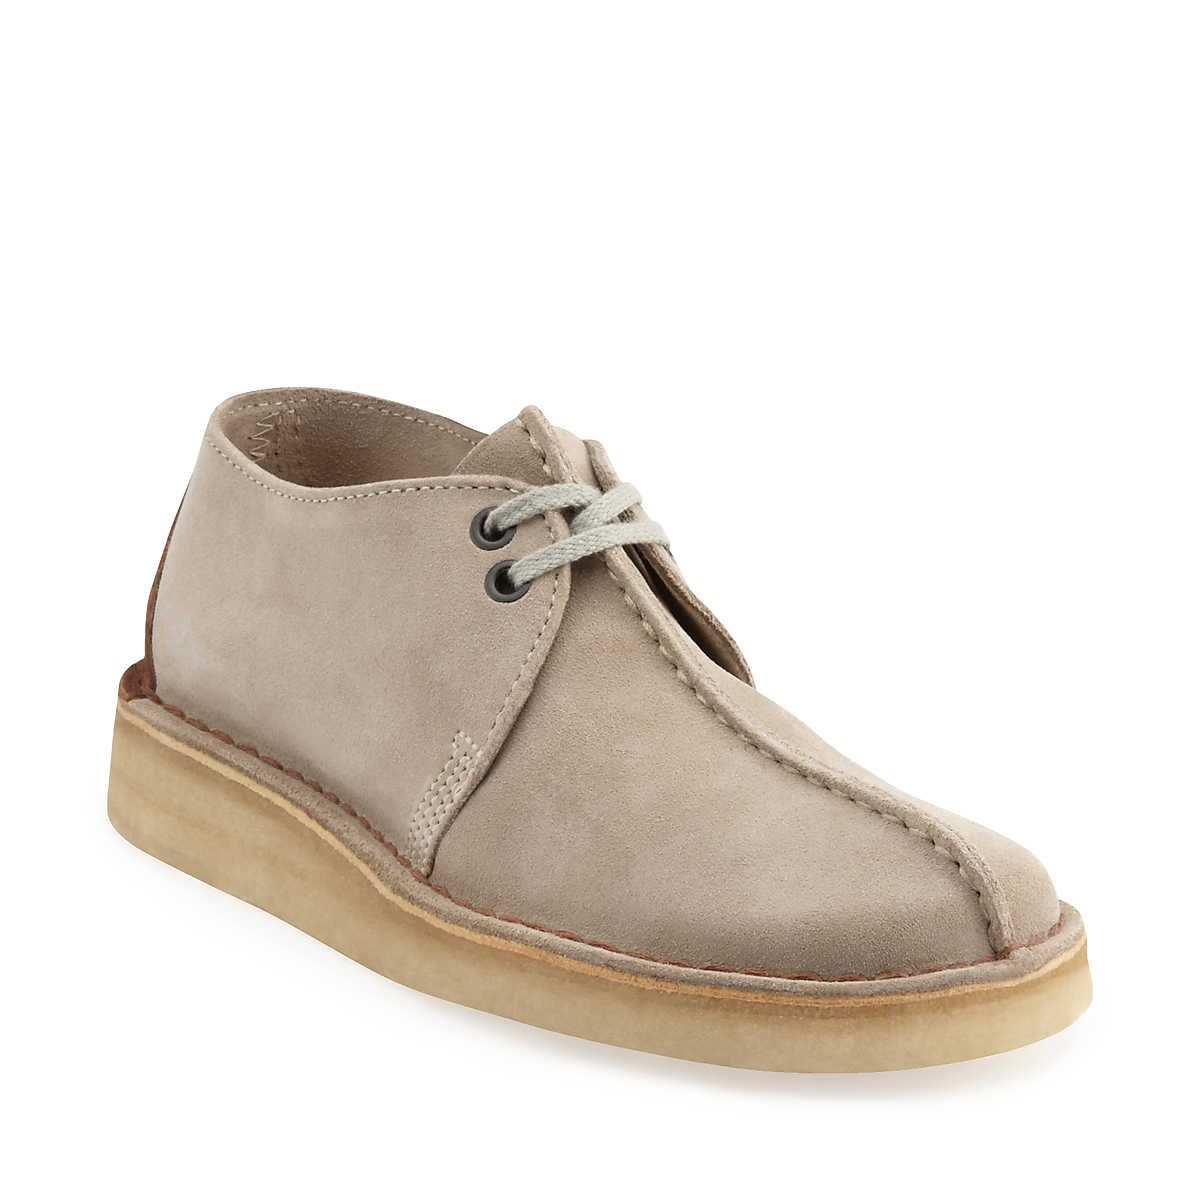 Sand Suede - Womens Shoes from Clarks